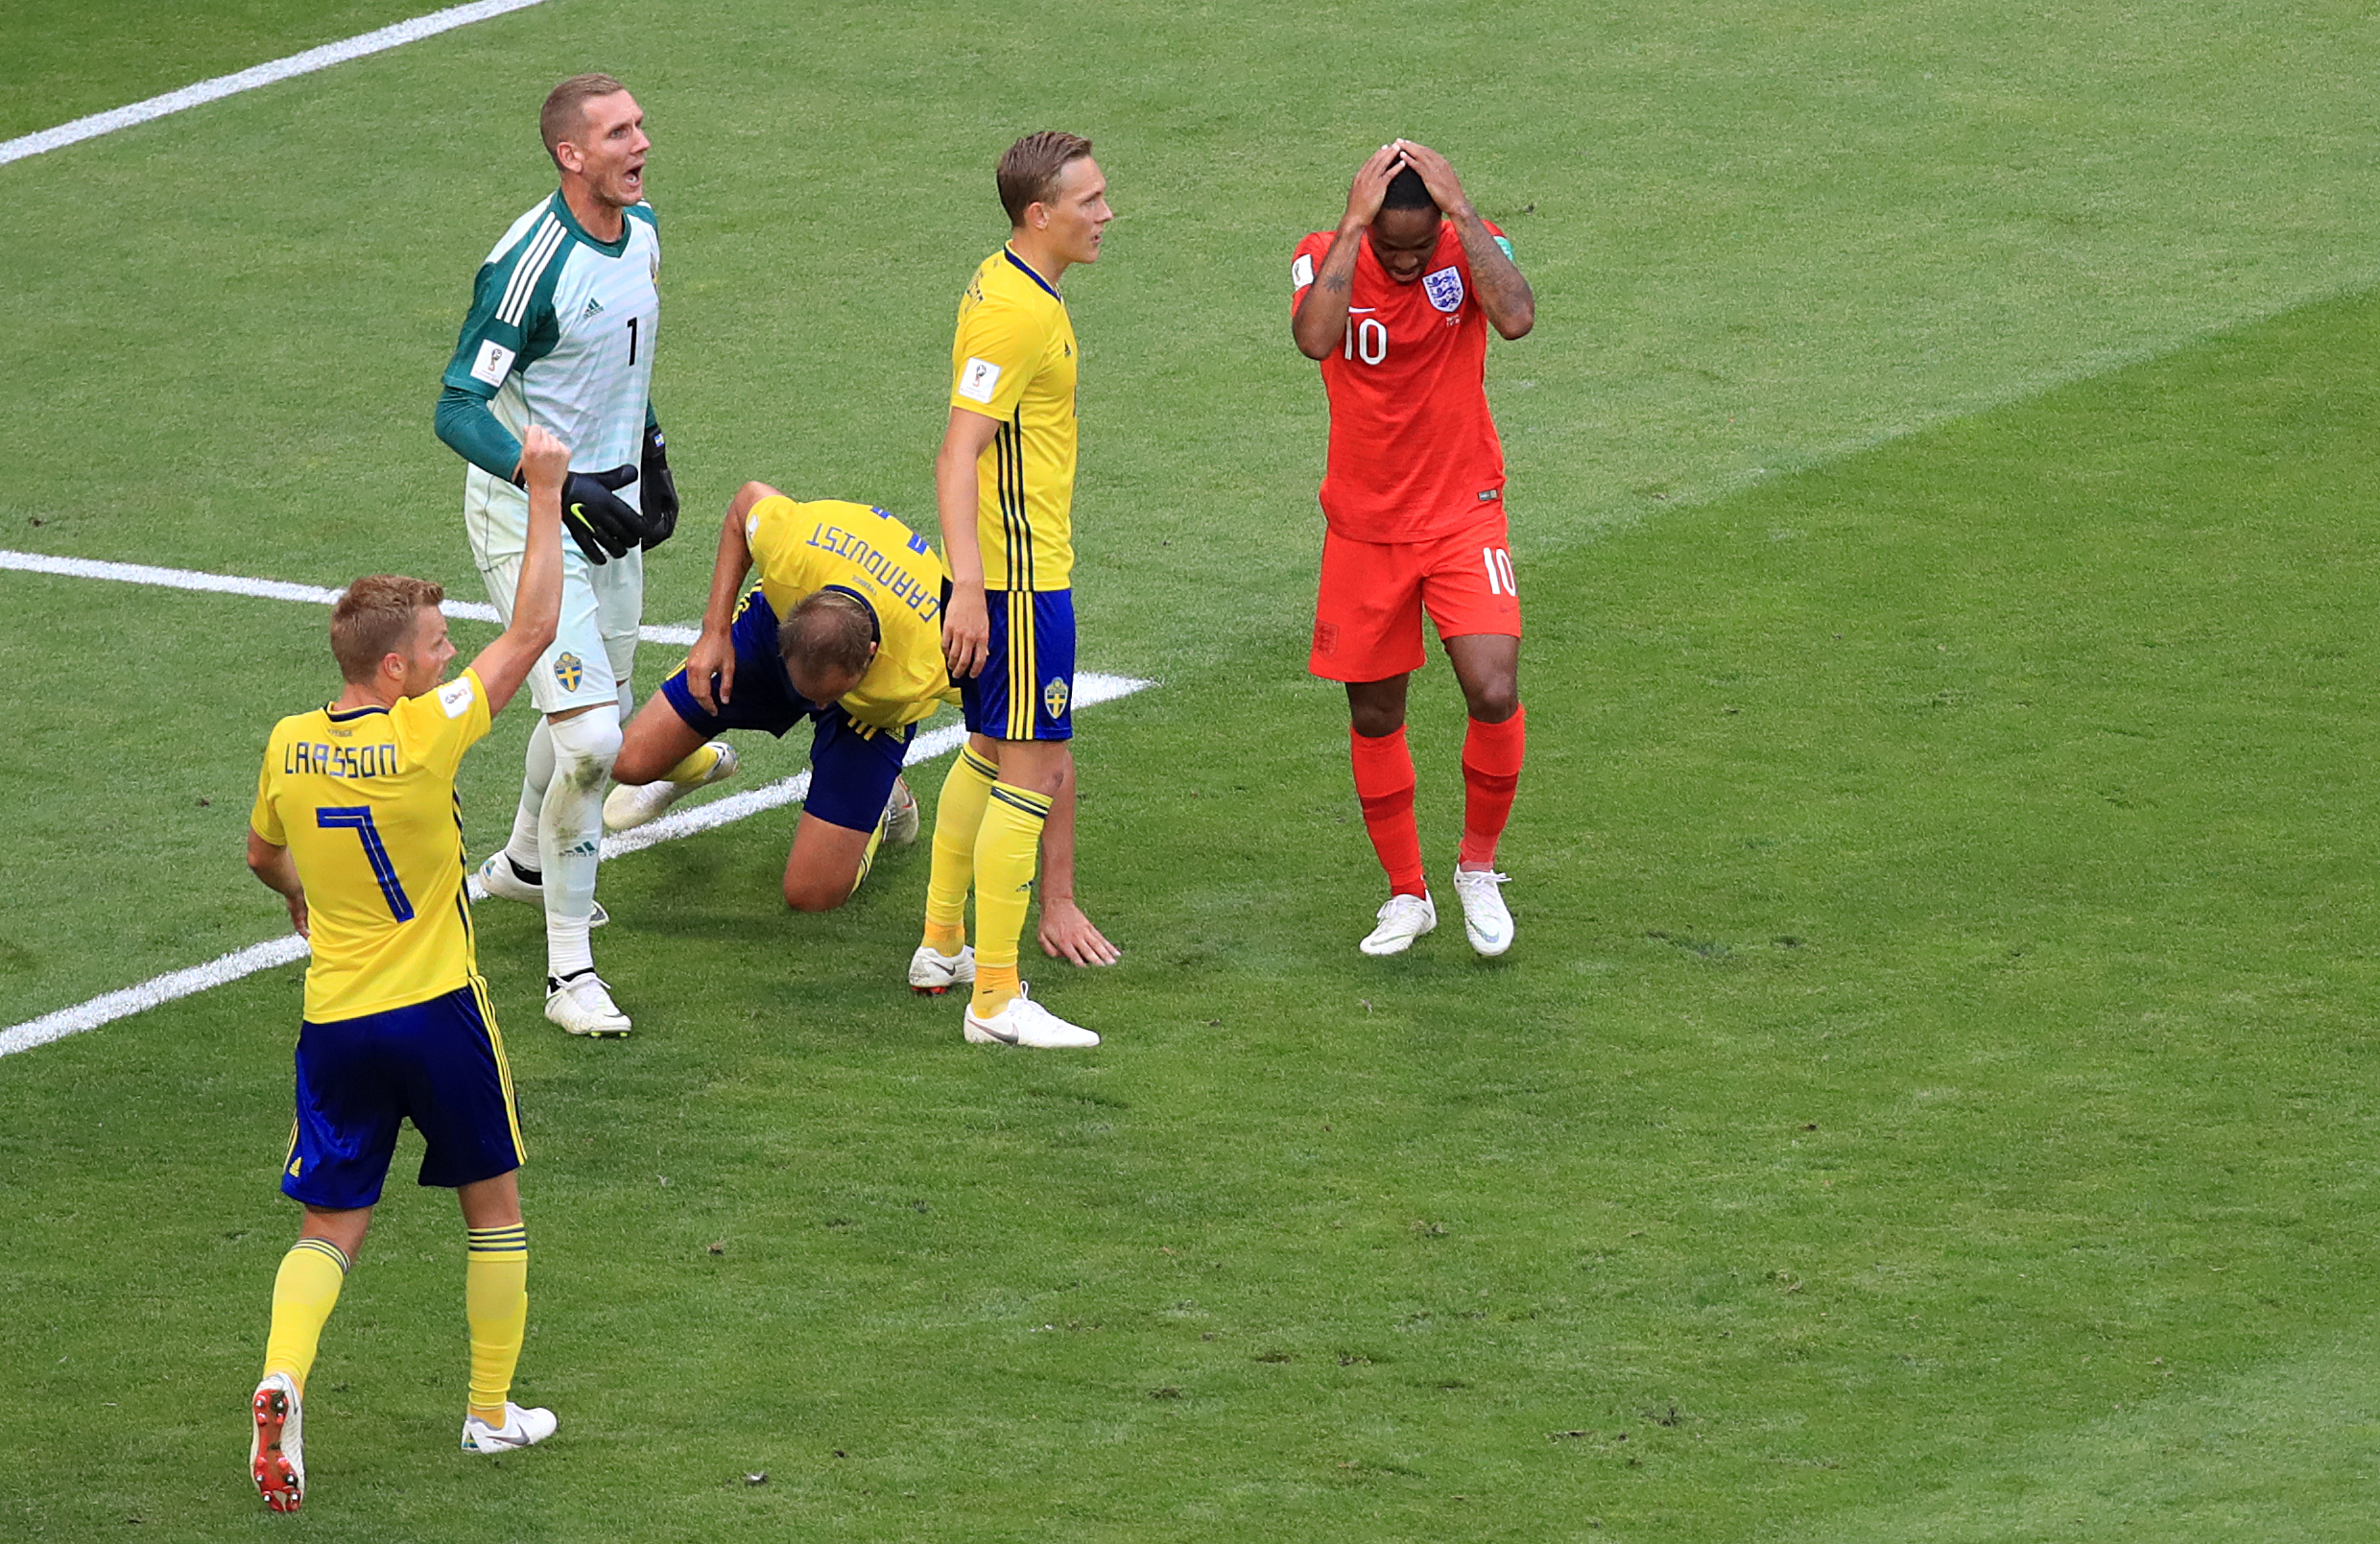 England's Raheem Sterling after missing a chance against Sweden. Credit: PA